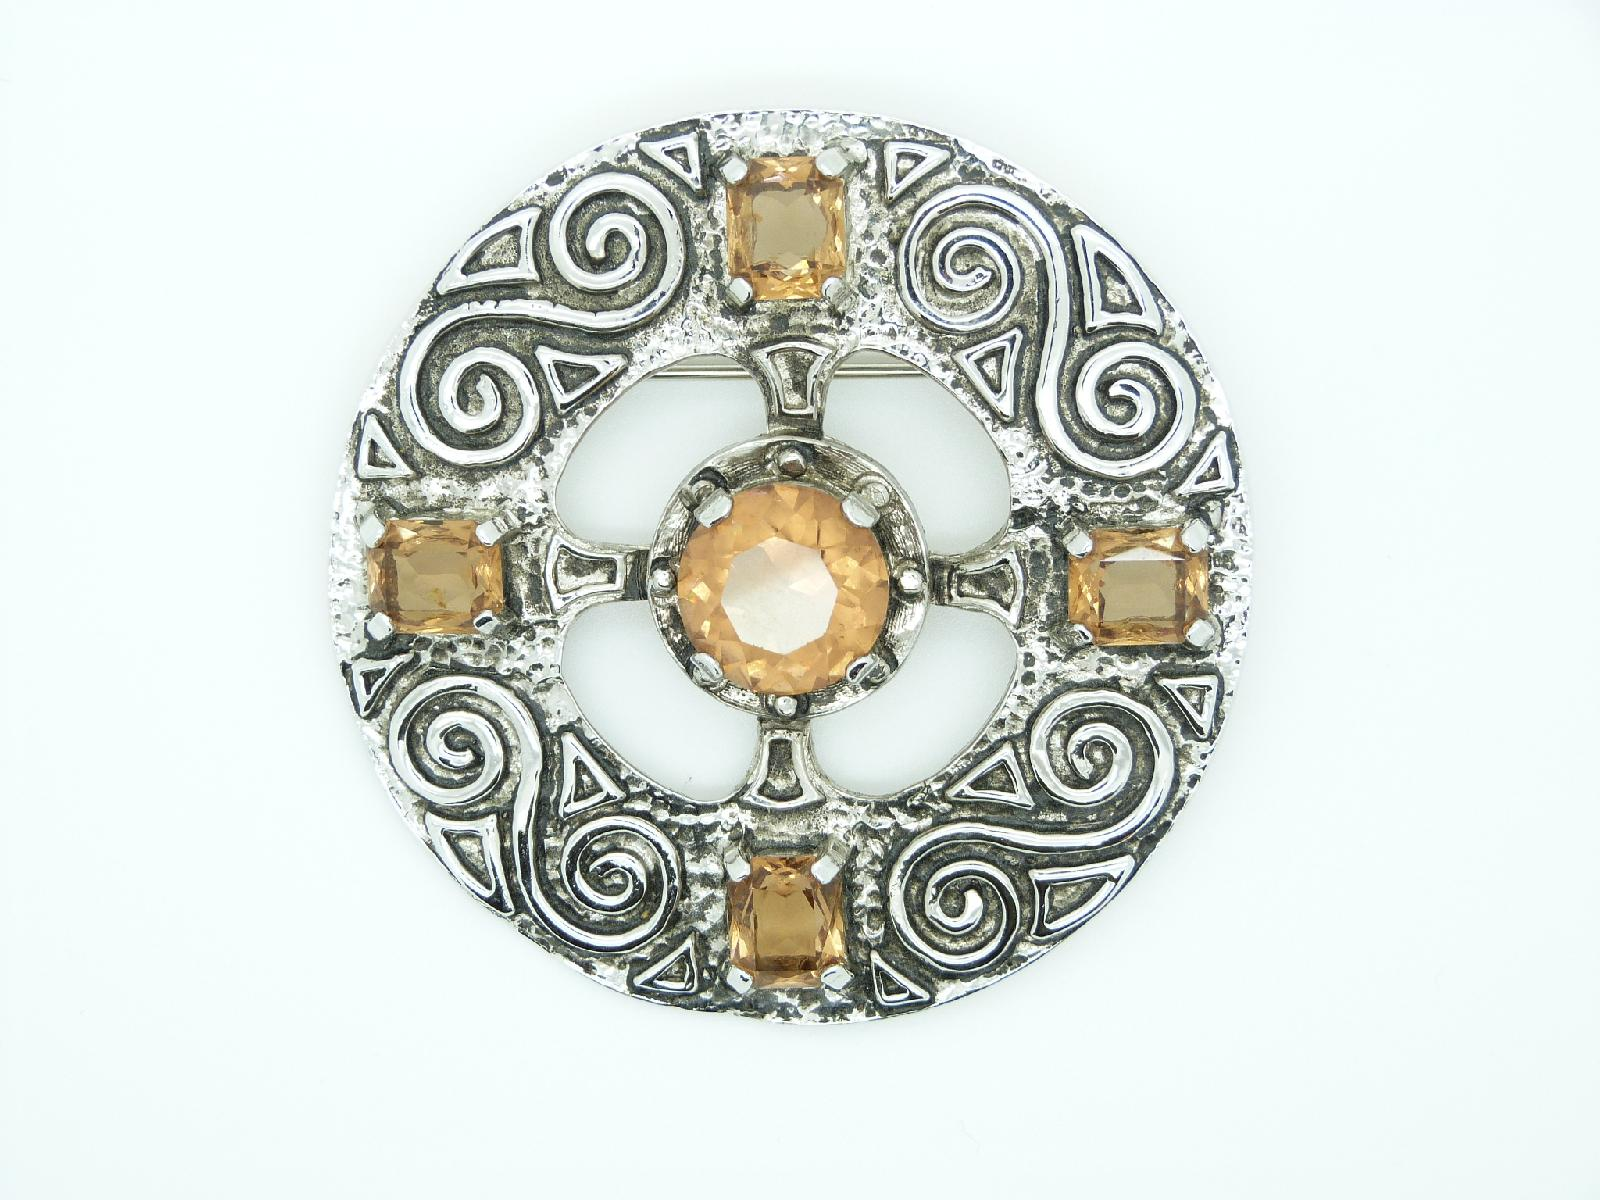 £45.00 - Vintage 80s Very Large Celtic Design Citrine Glass Stone Statement Brooch